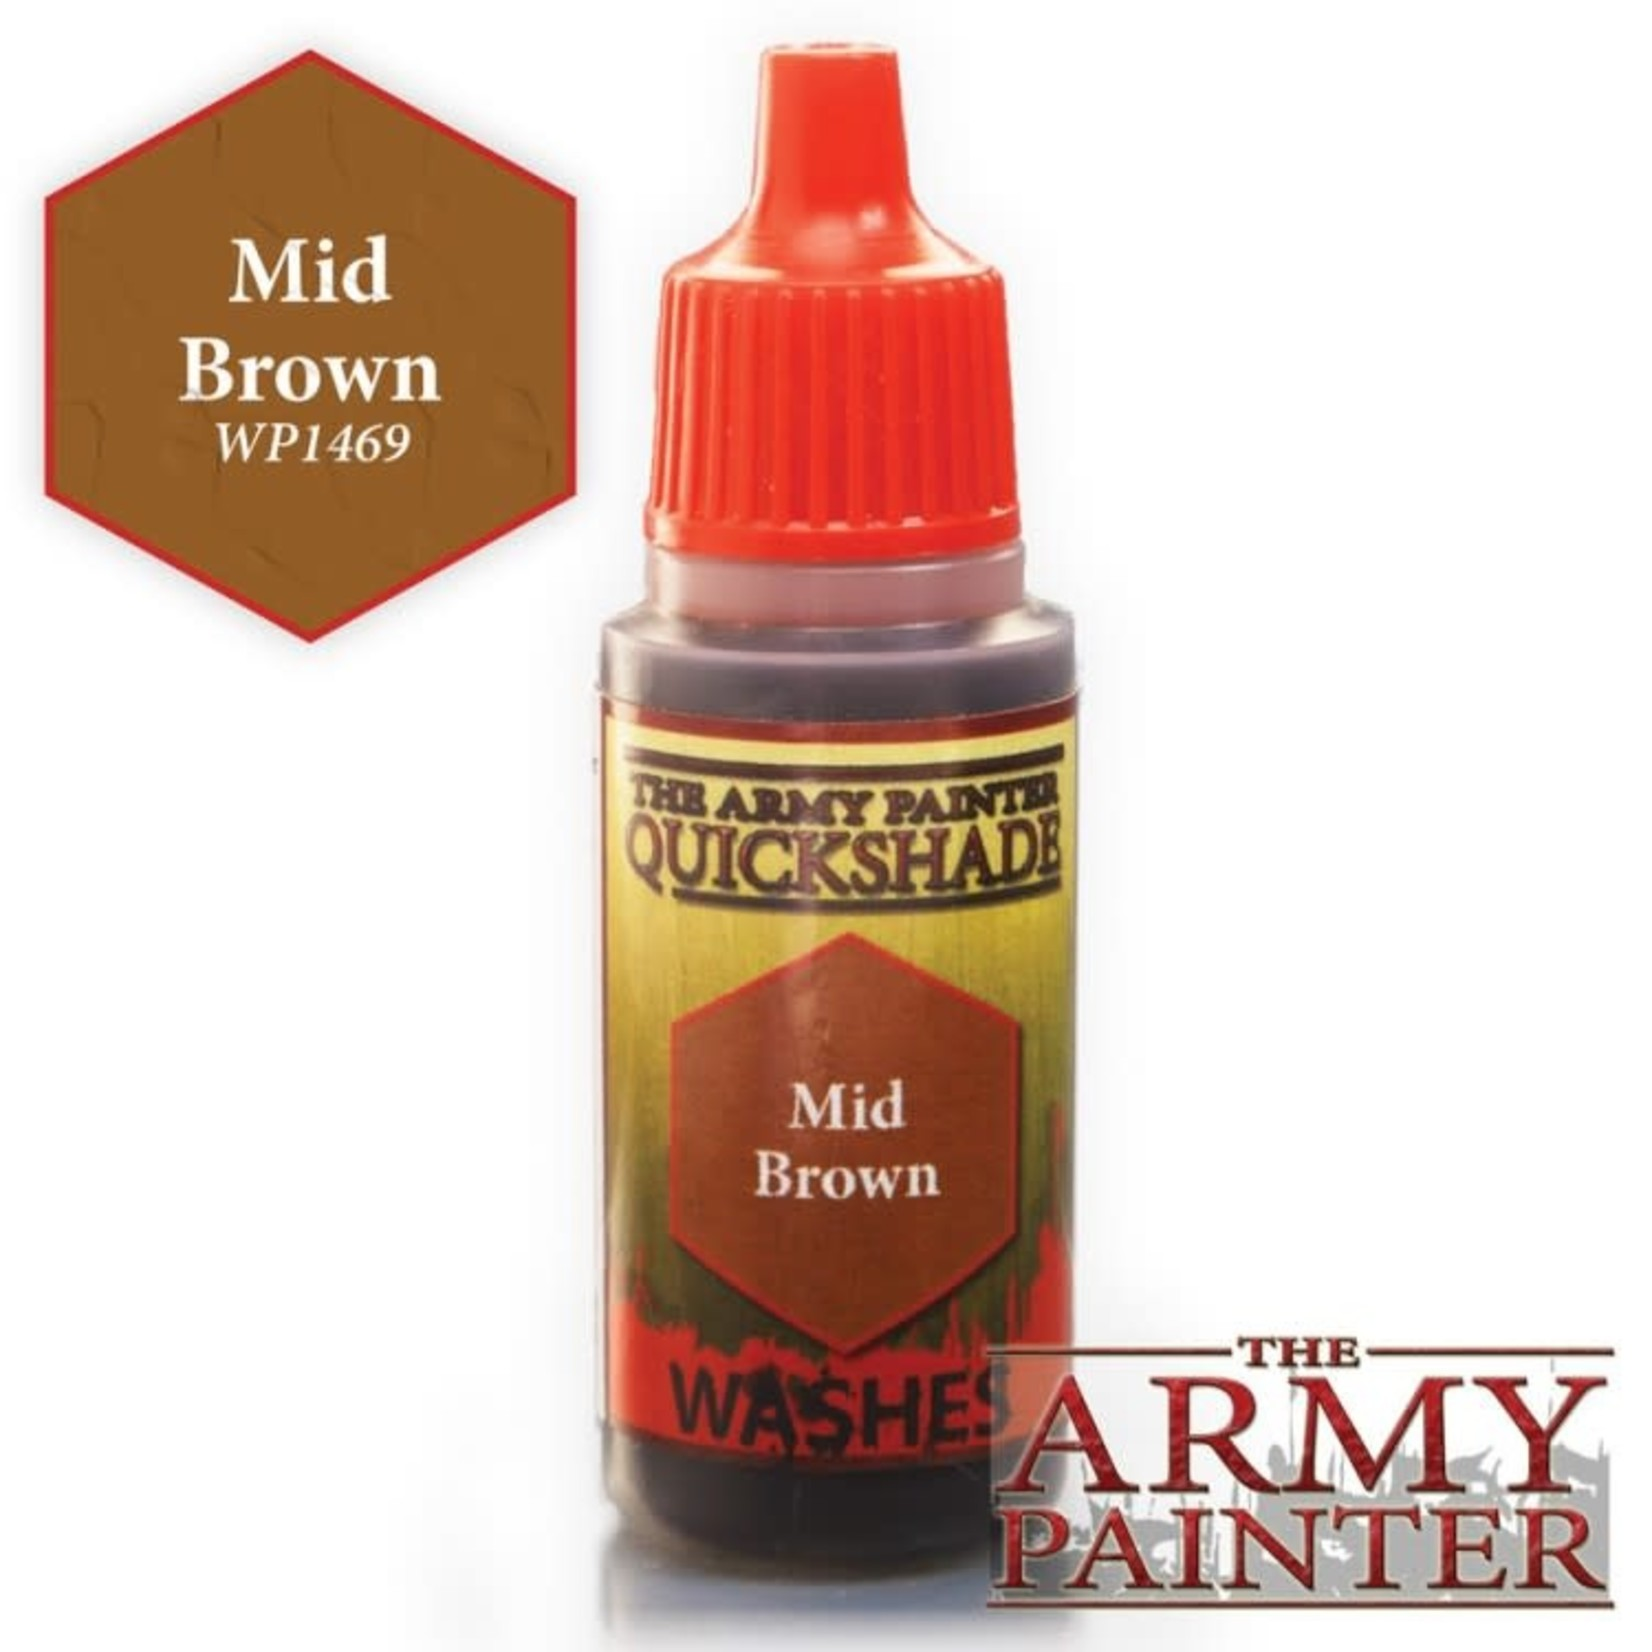 The Army Painter The Army Painter: Washes:  Mid Brown